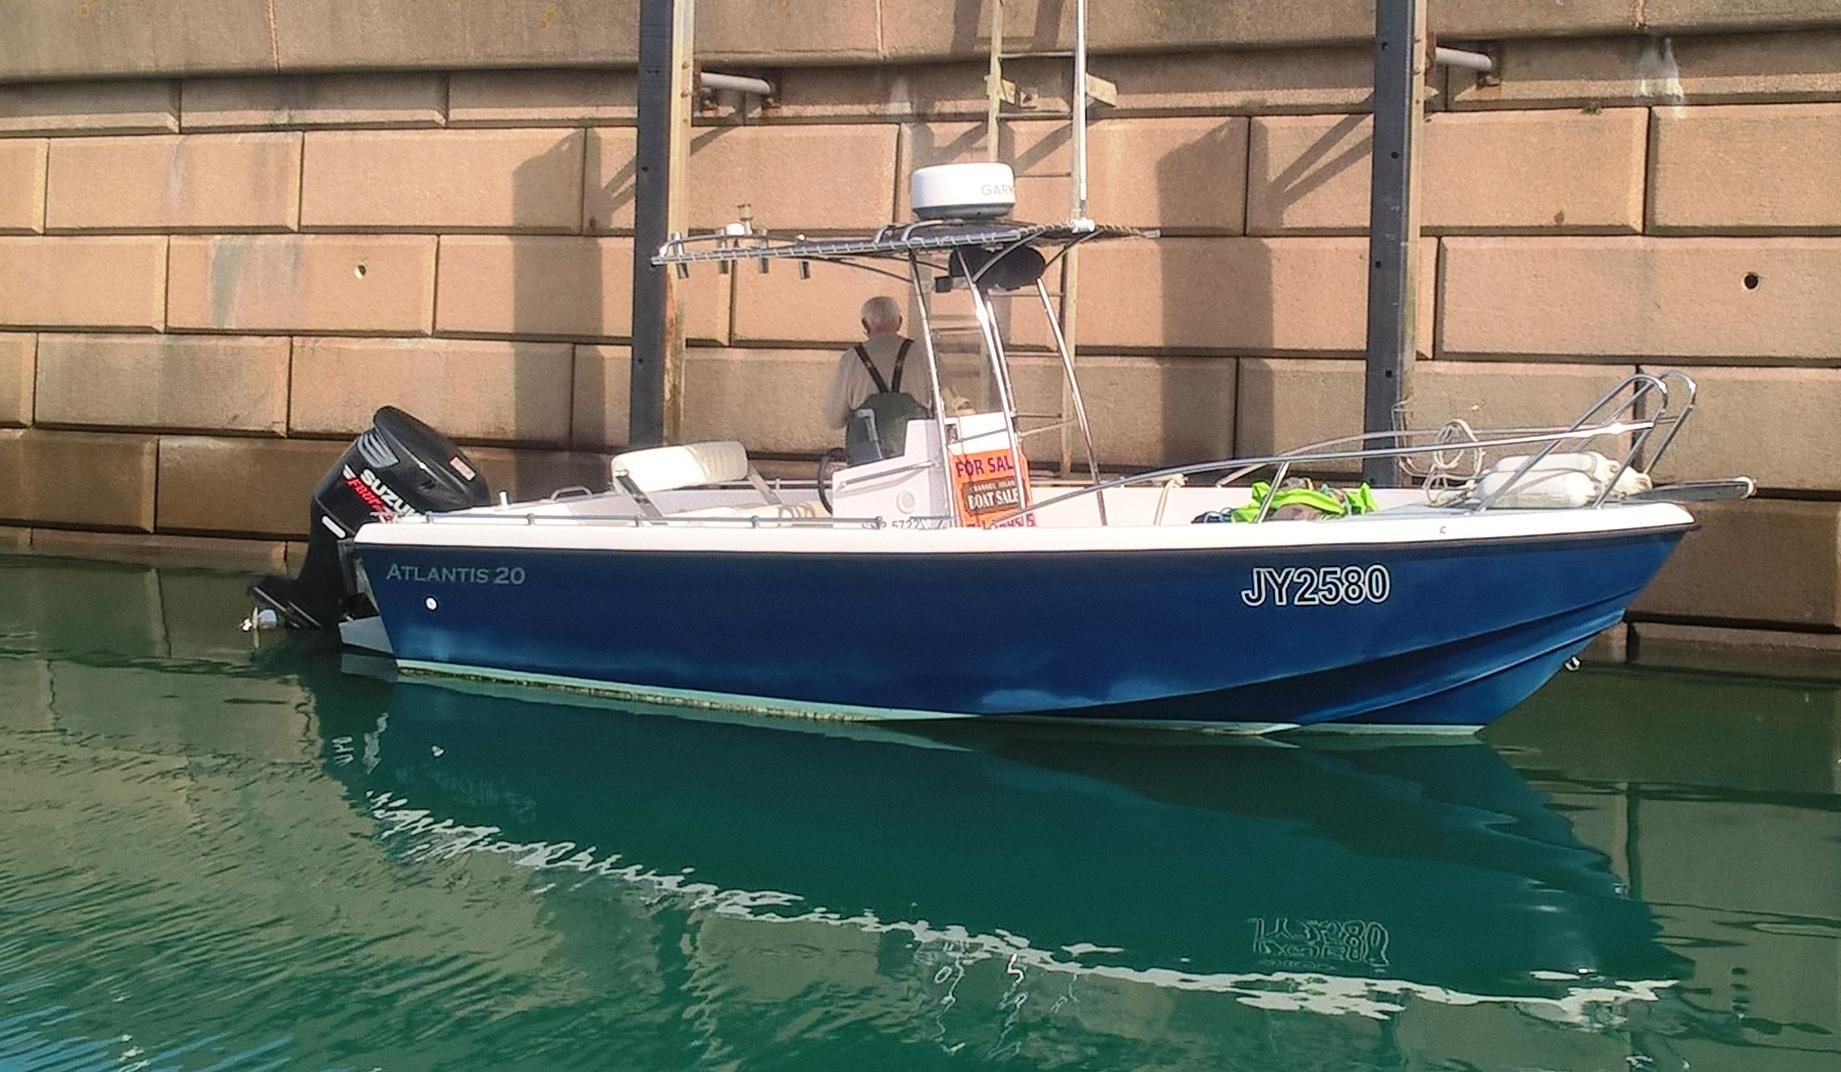 2011 Atlantis 20cc Power New And Used Boats For Sale Www